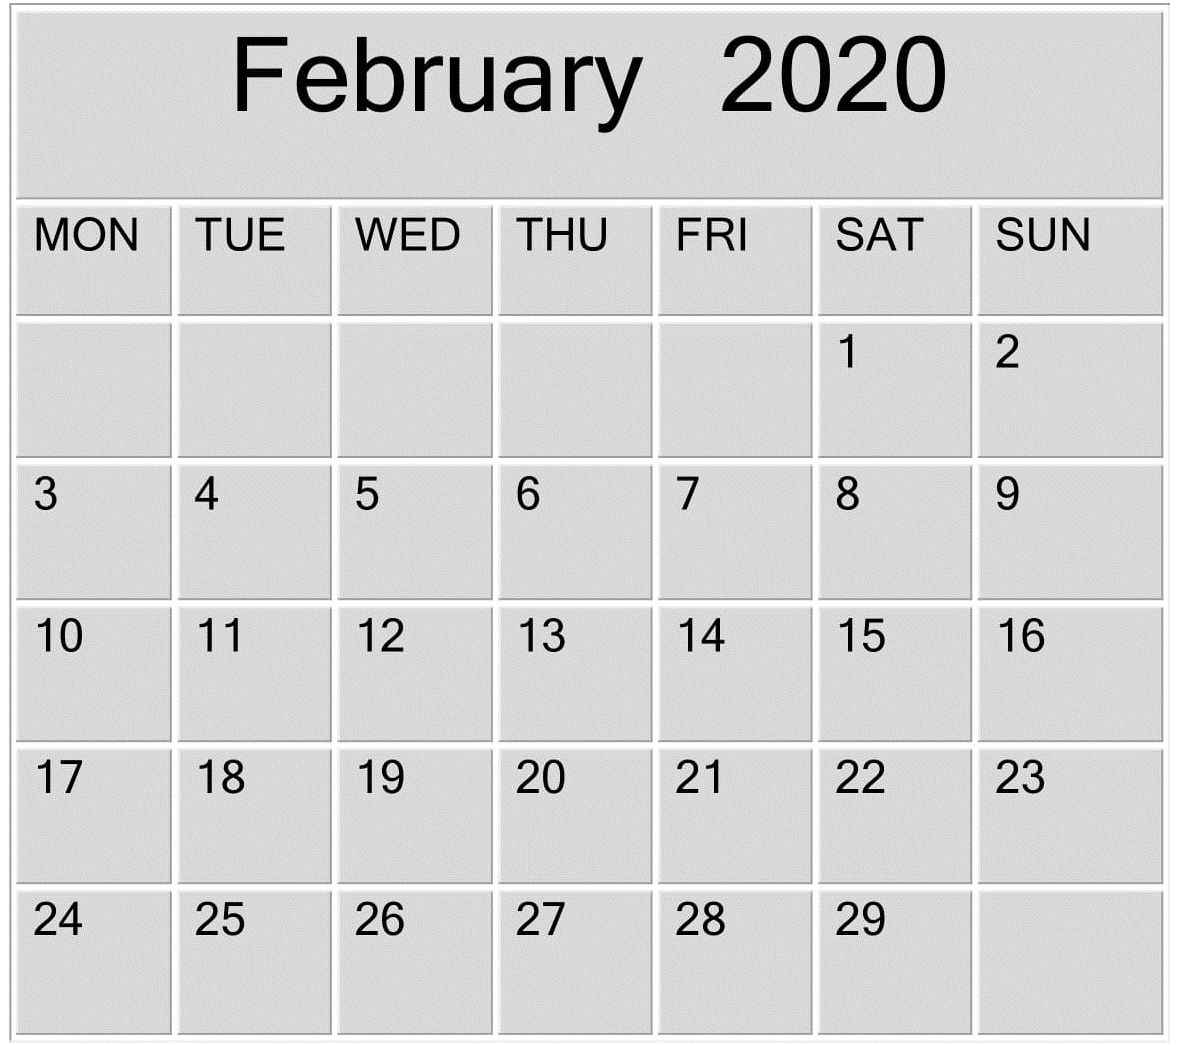 February 2020 Blank Calendar Word, Excel Template – Free